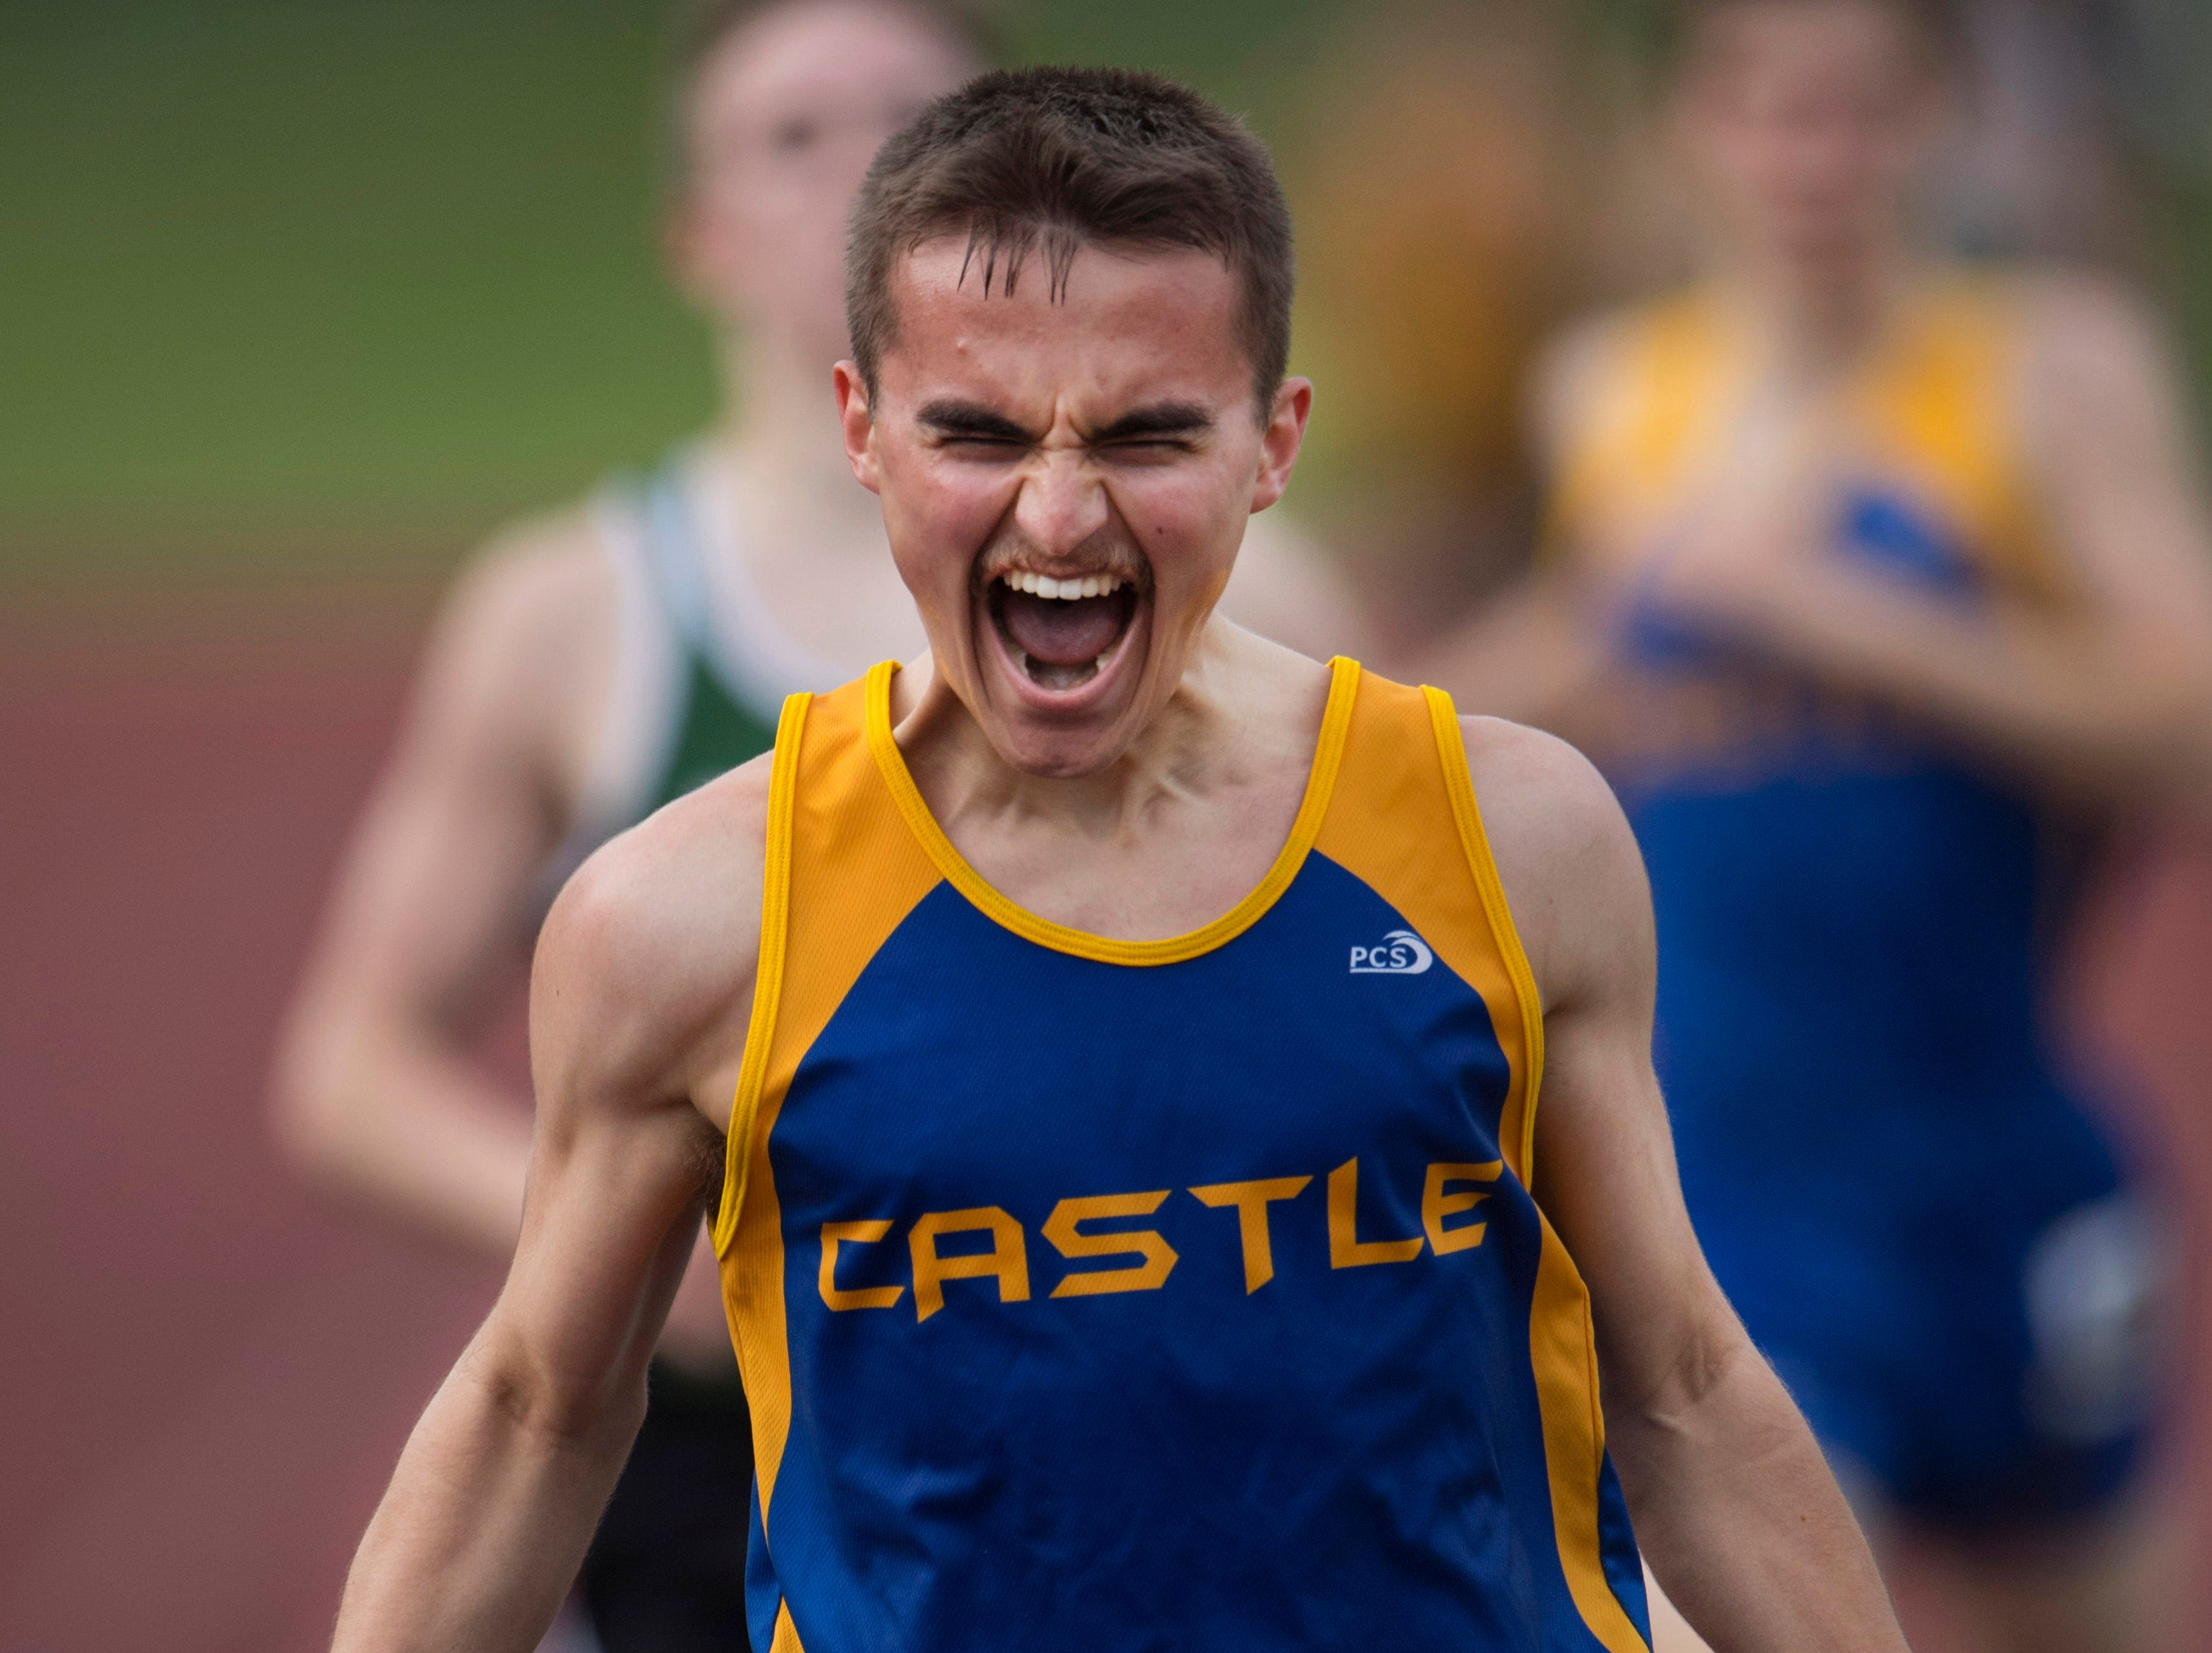 Ethan Jones celebrates his fifth-place finish in the 1600 meter run during the SIAC Track & Field Meet at Central Stadium Friday evening. He ran a personal best of 4:41.47.